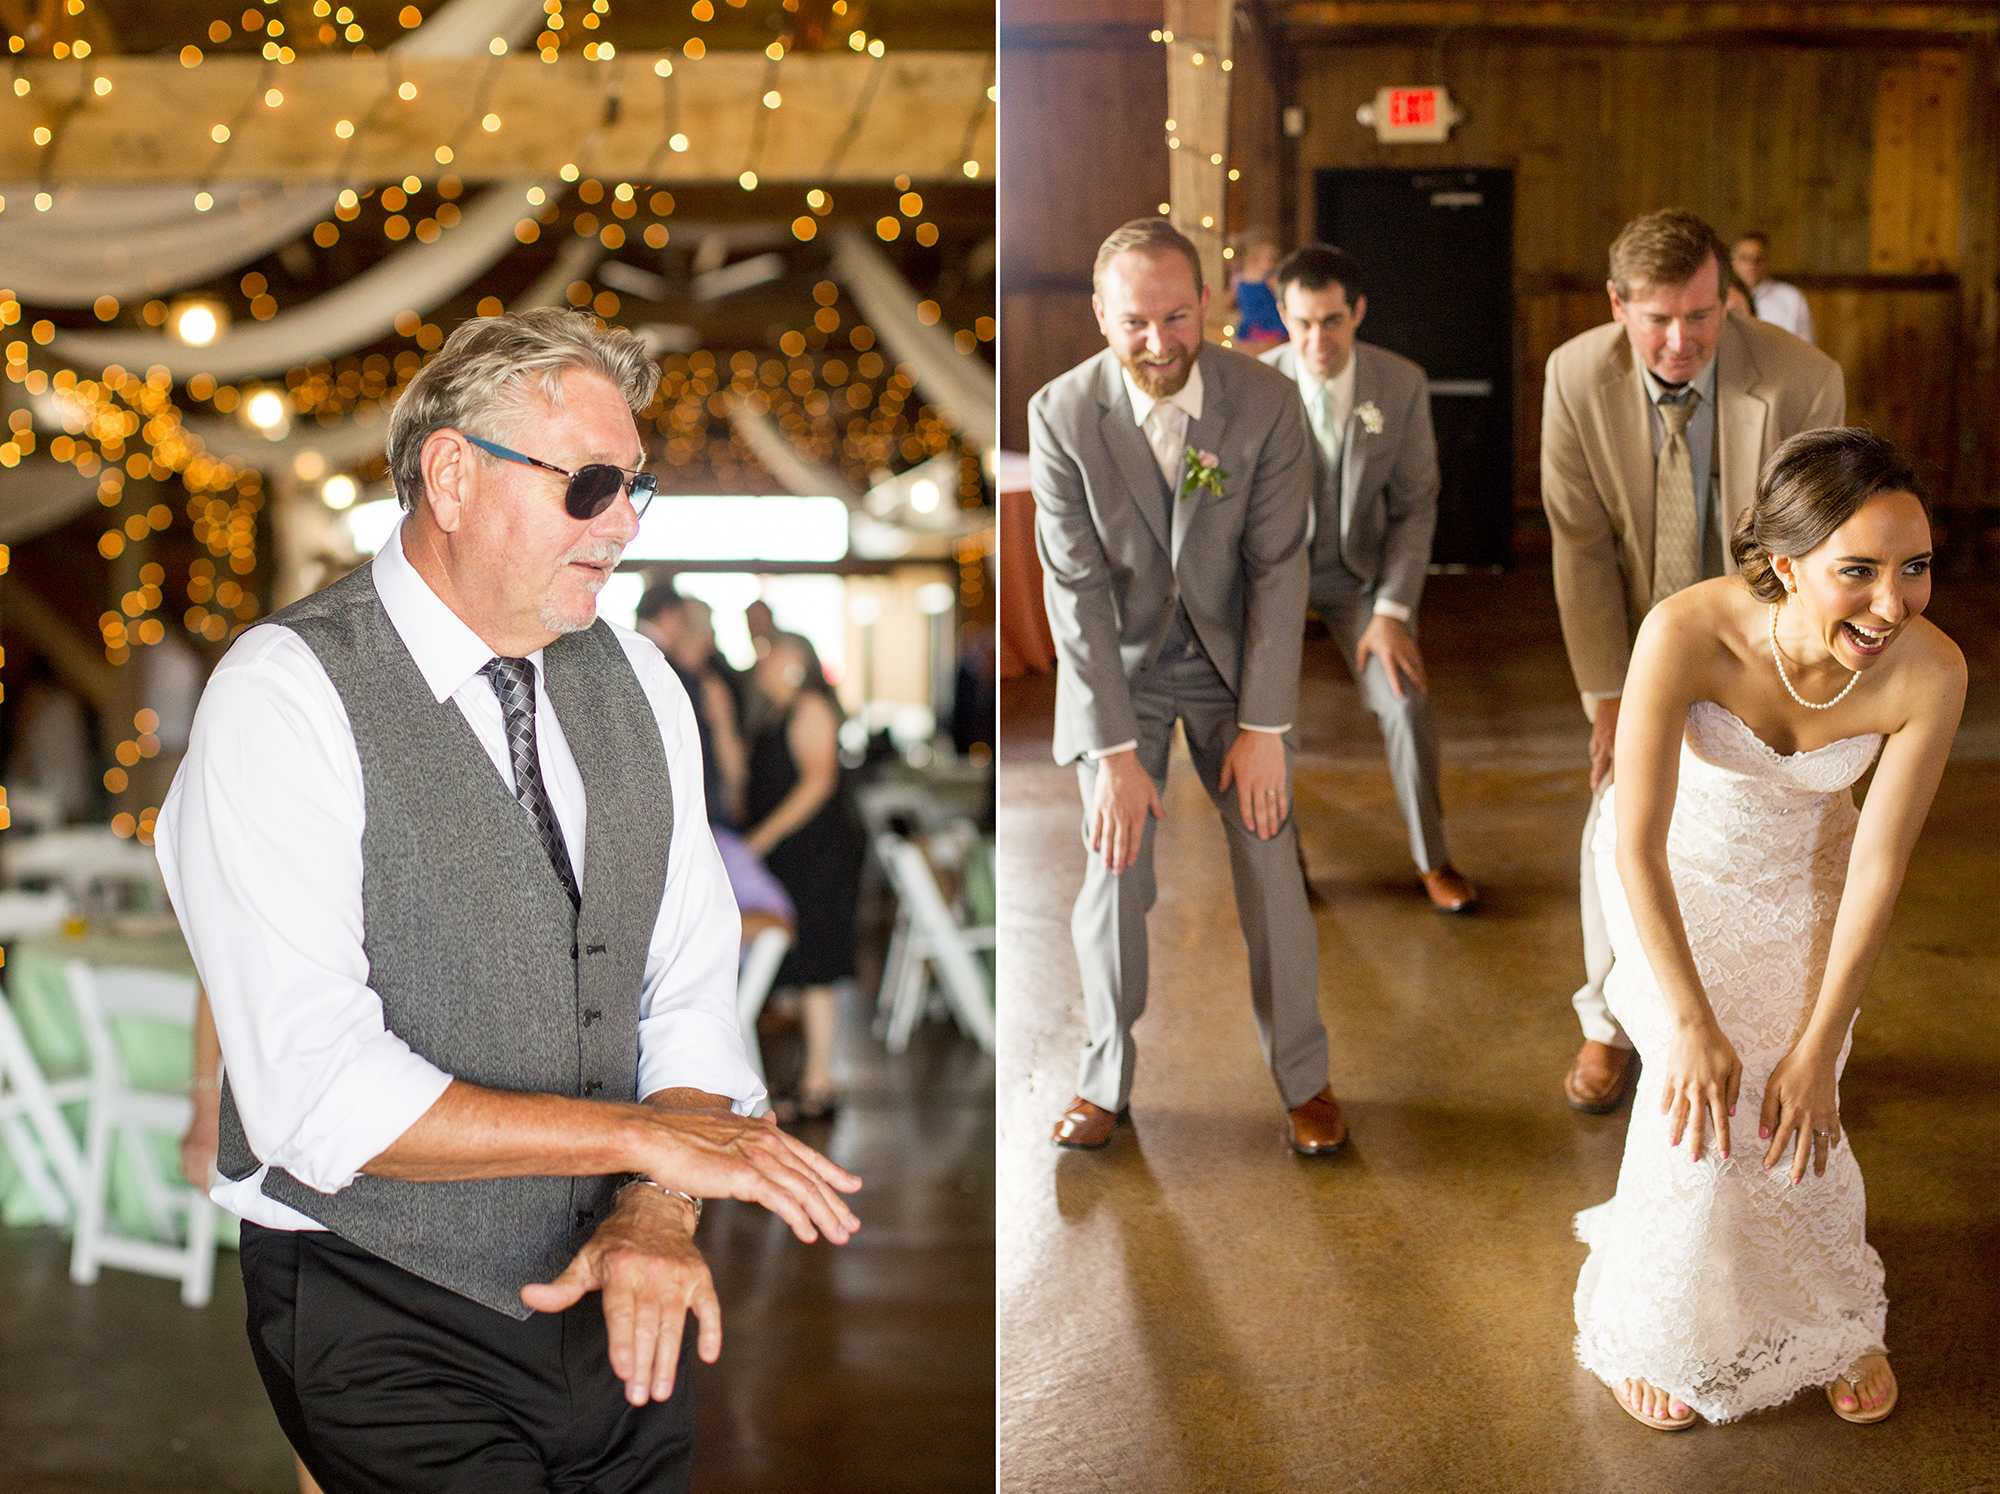 Seriously_Sabrina_Photography_Lexington_Kentucky_Talon_Winery_Wedding_Kjellsen129.jpg